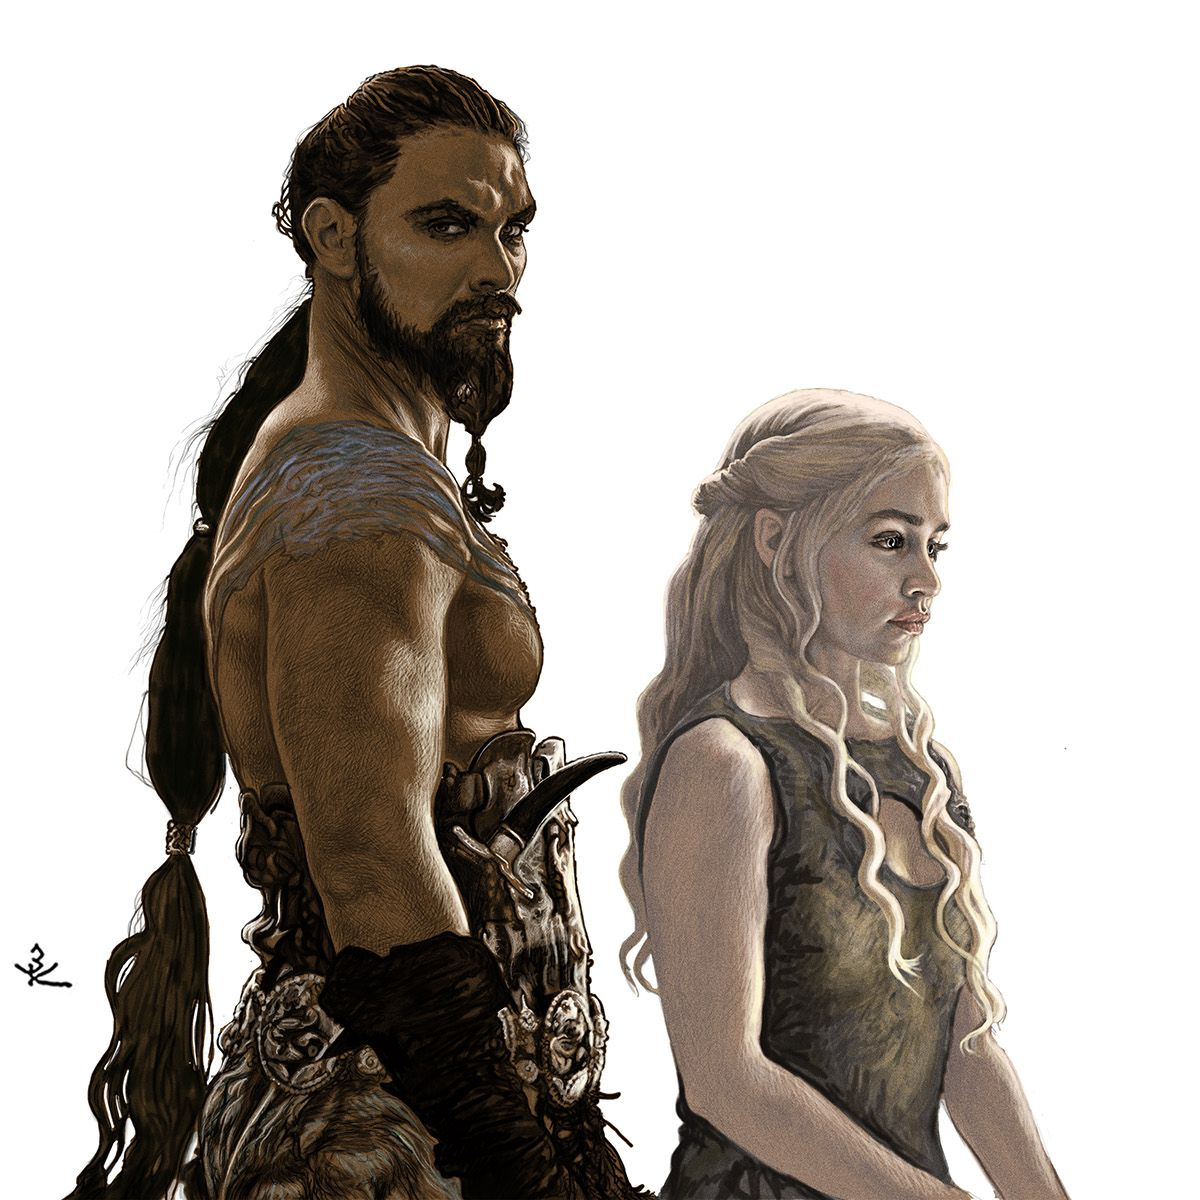 Jason Momoa Game Of Thrones: Khal Drogo And Danaerys Targaryen By Zinaida Korotkova